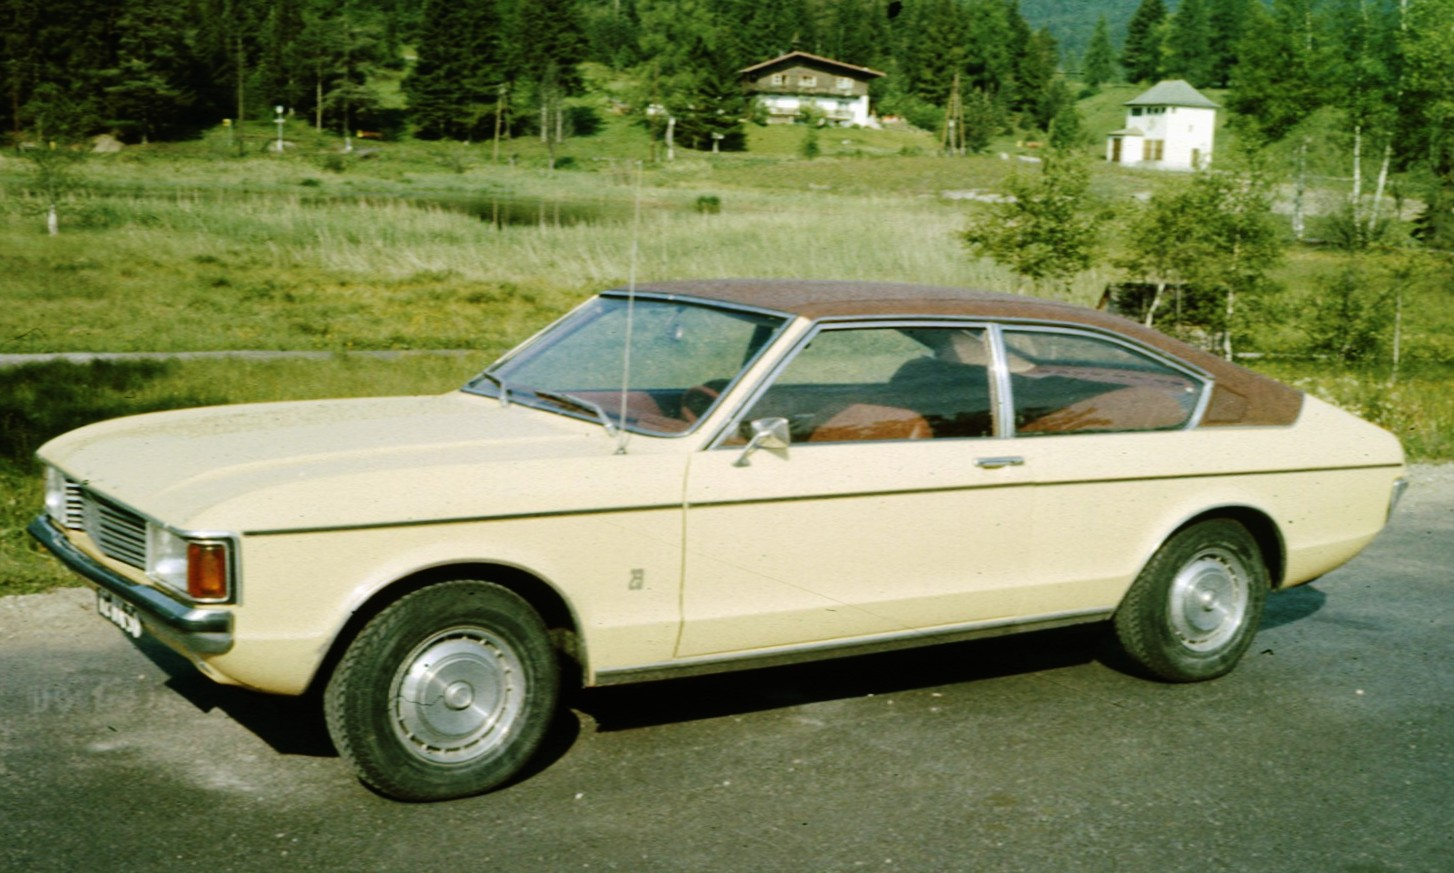 Ford Granada Mark I coupé, later version